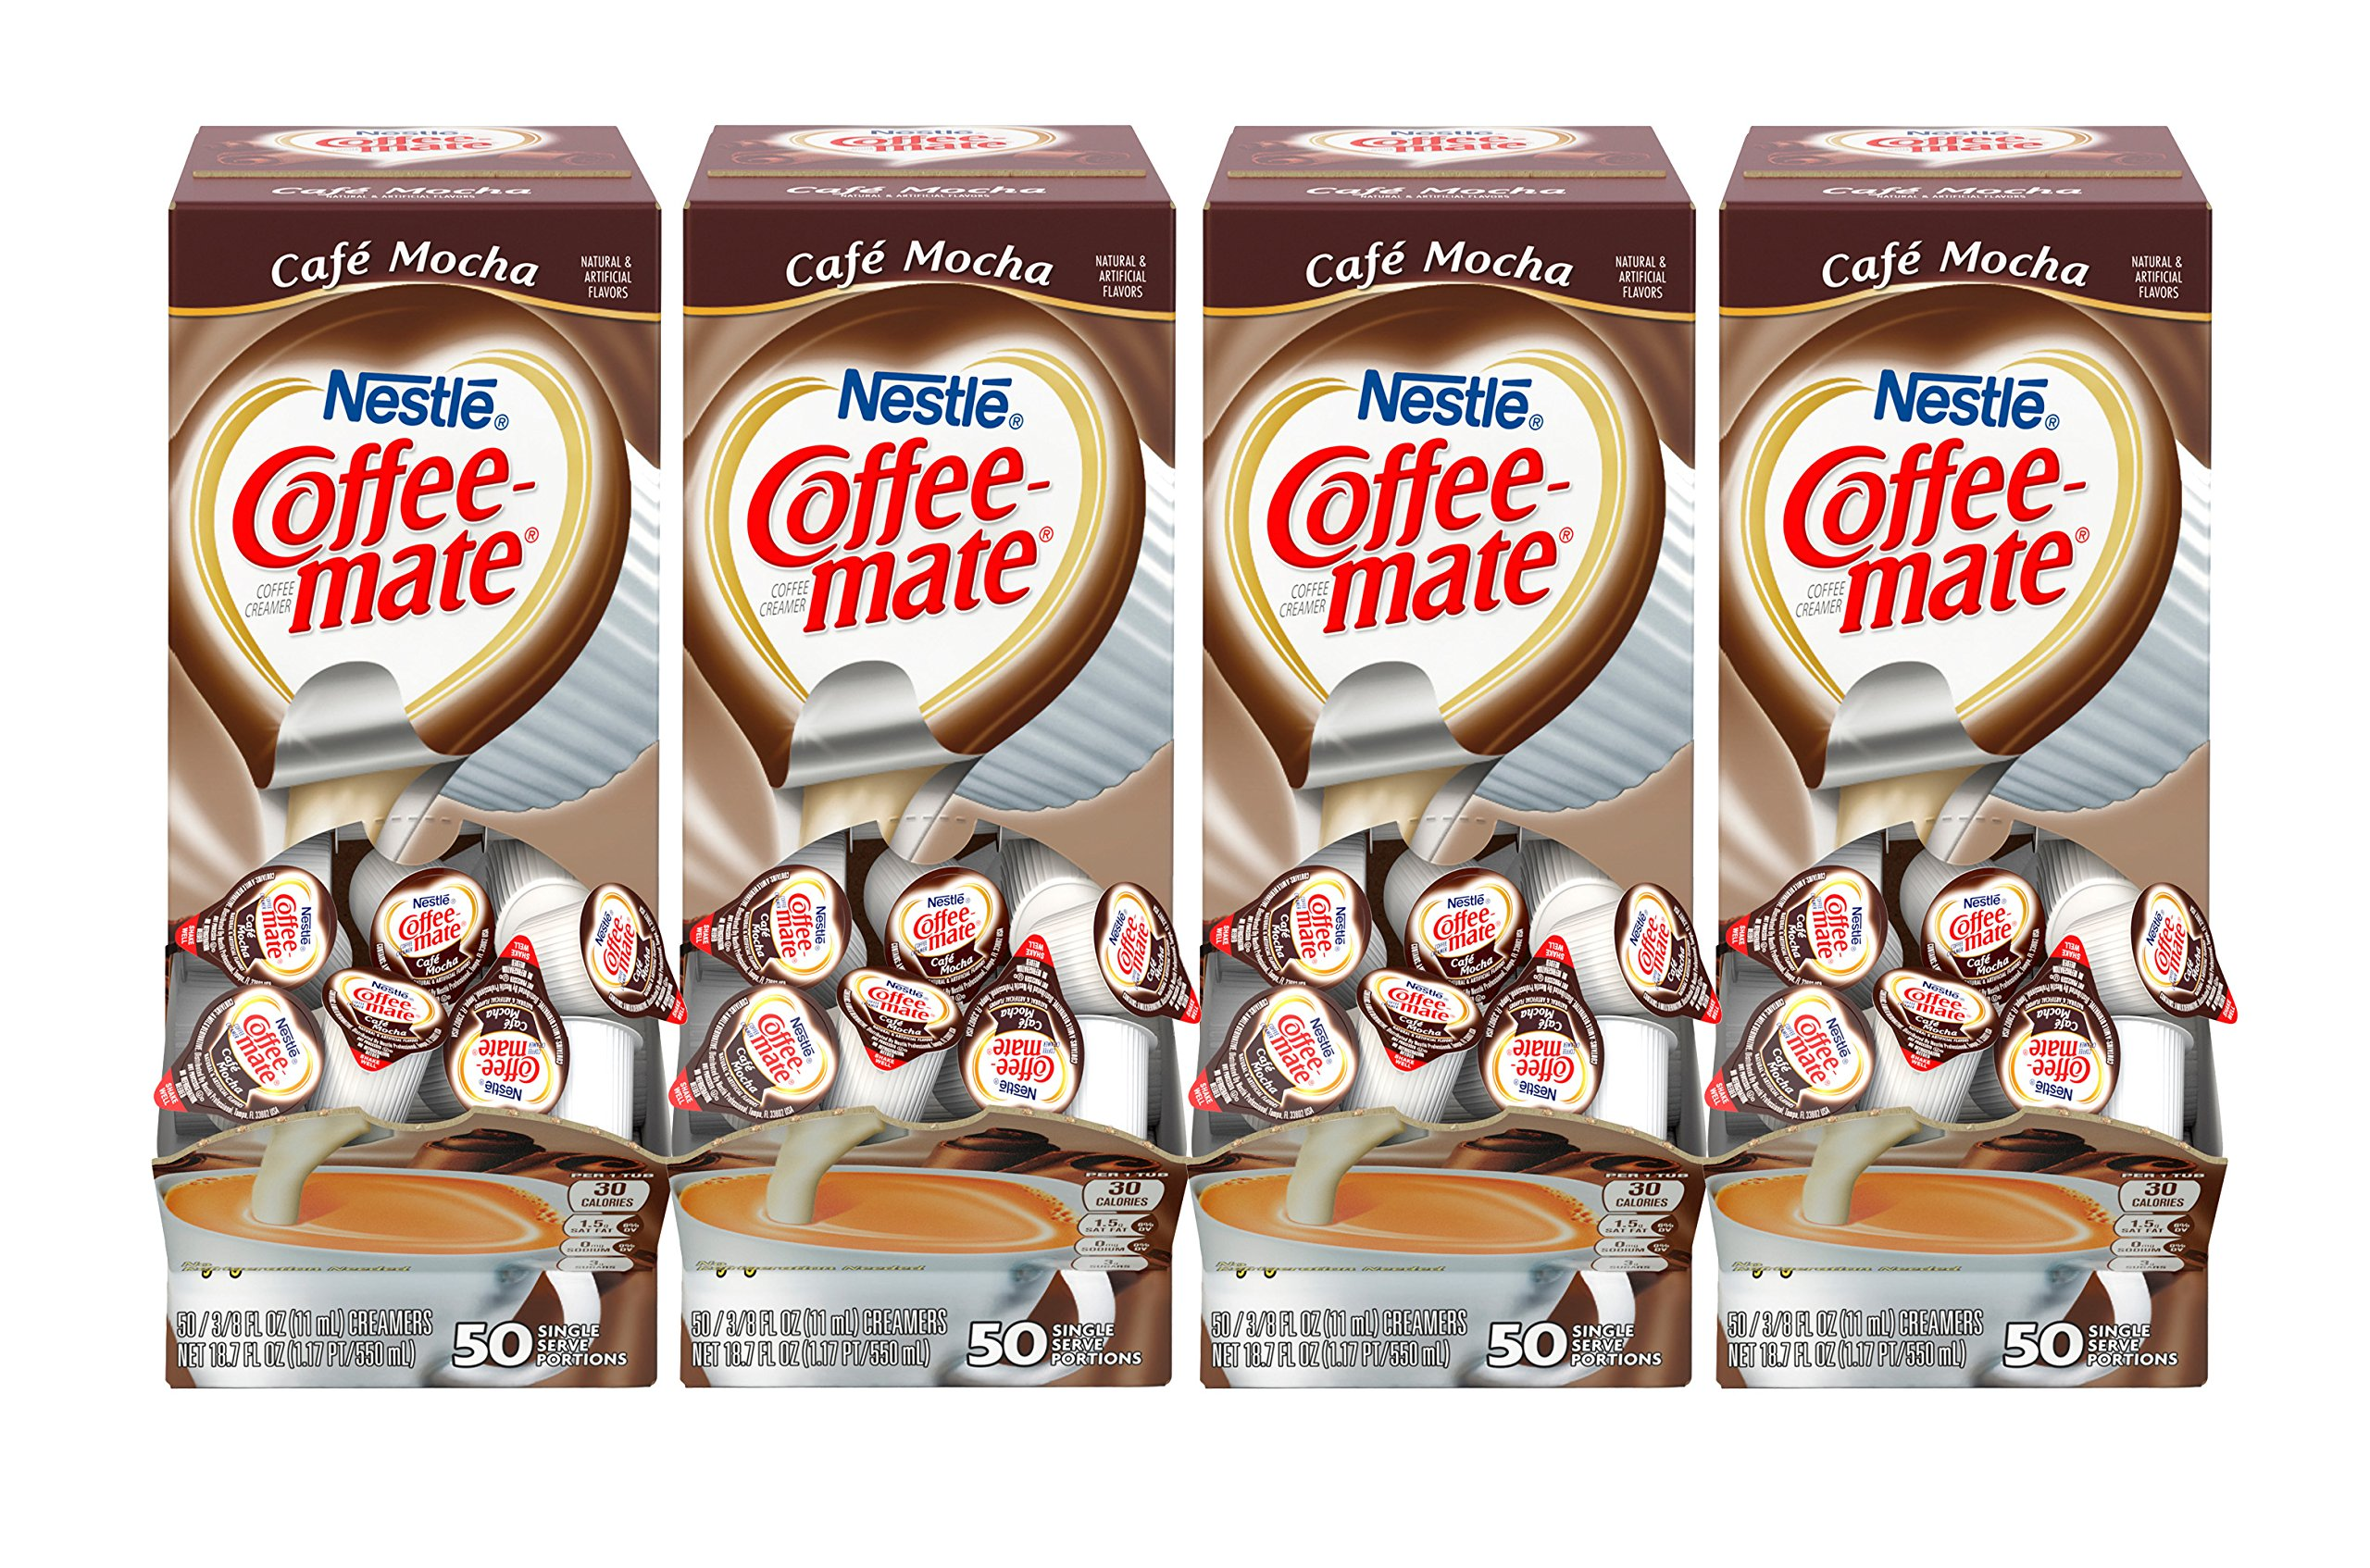 NESTLE COFFEE-MATE Coffee Creamer, Cafe Mocha, liquid creamer singles, 50 Count (Pack of 4) by Nestle Coffee Mate